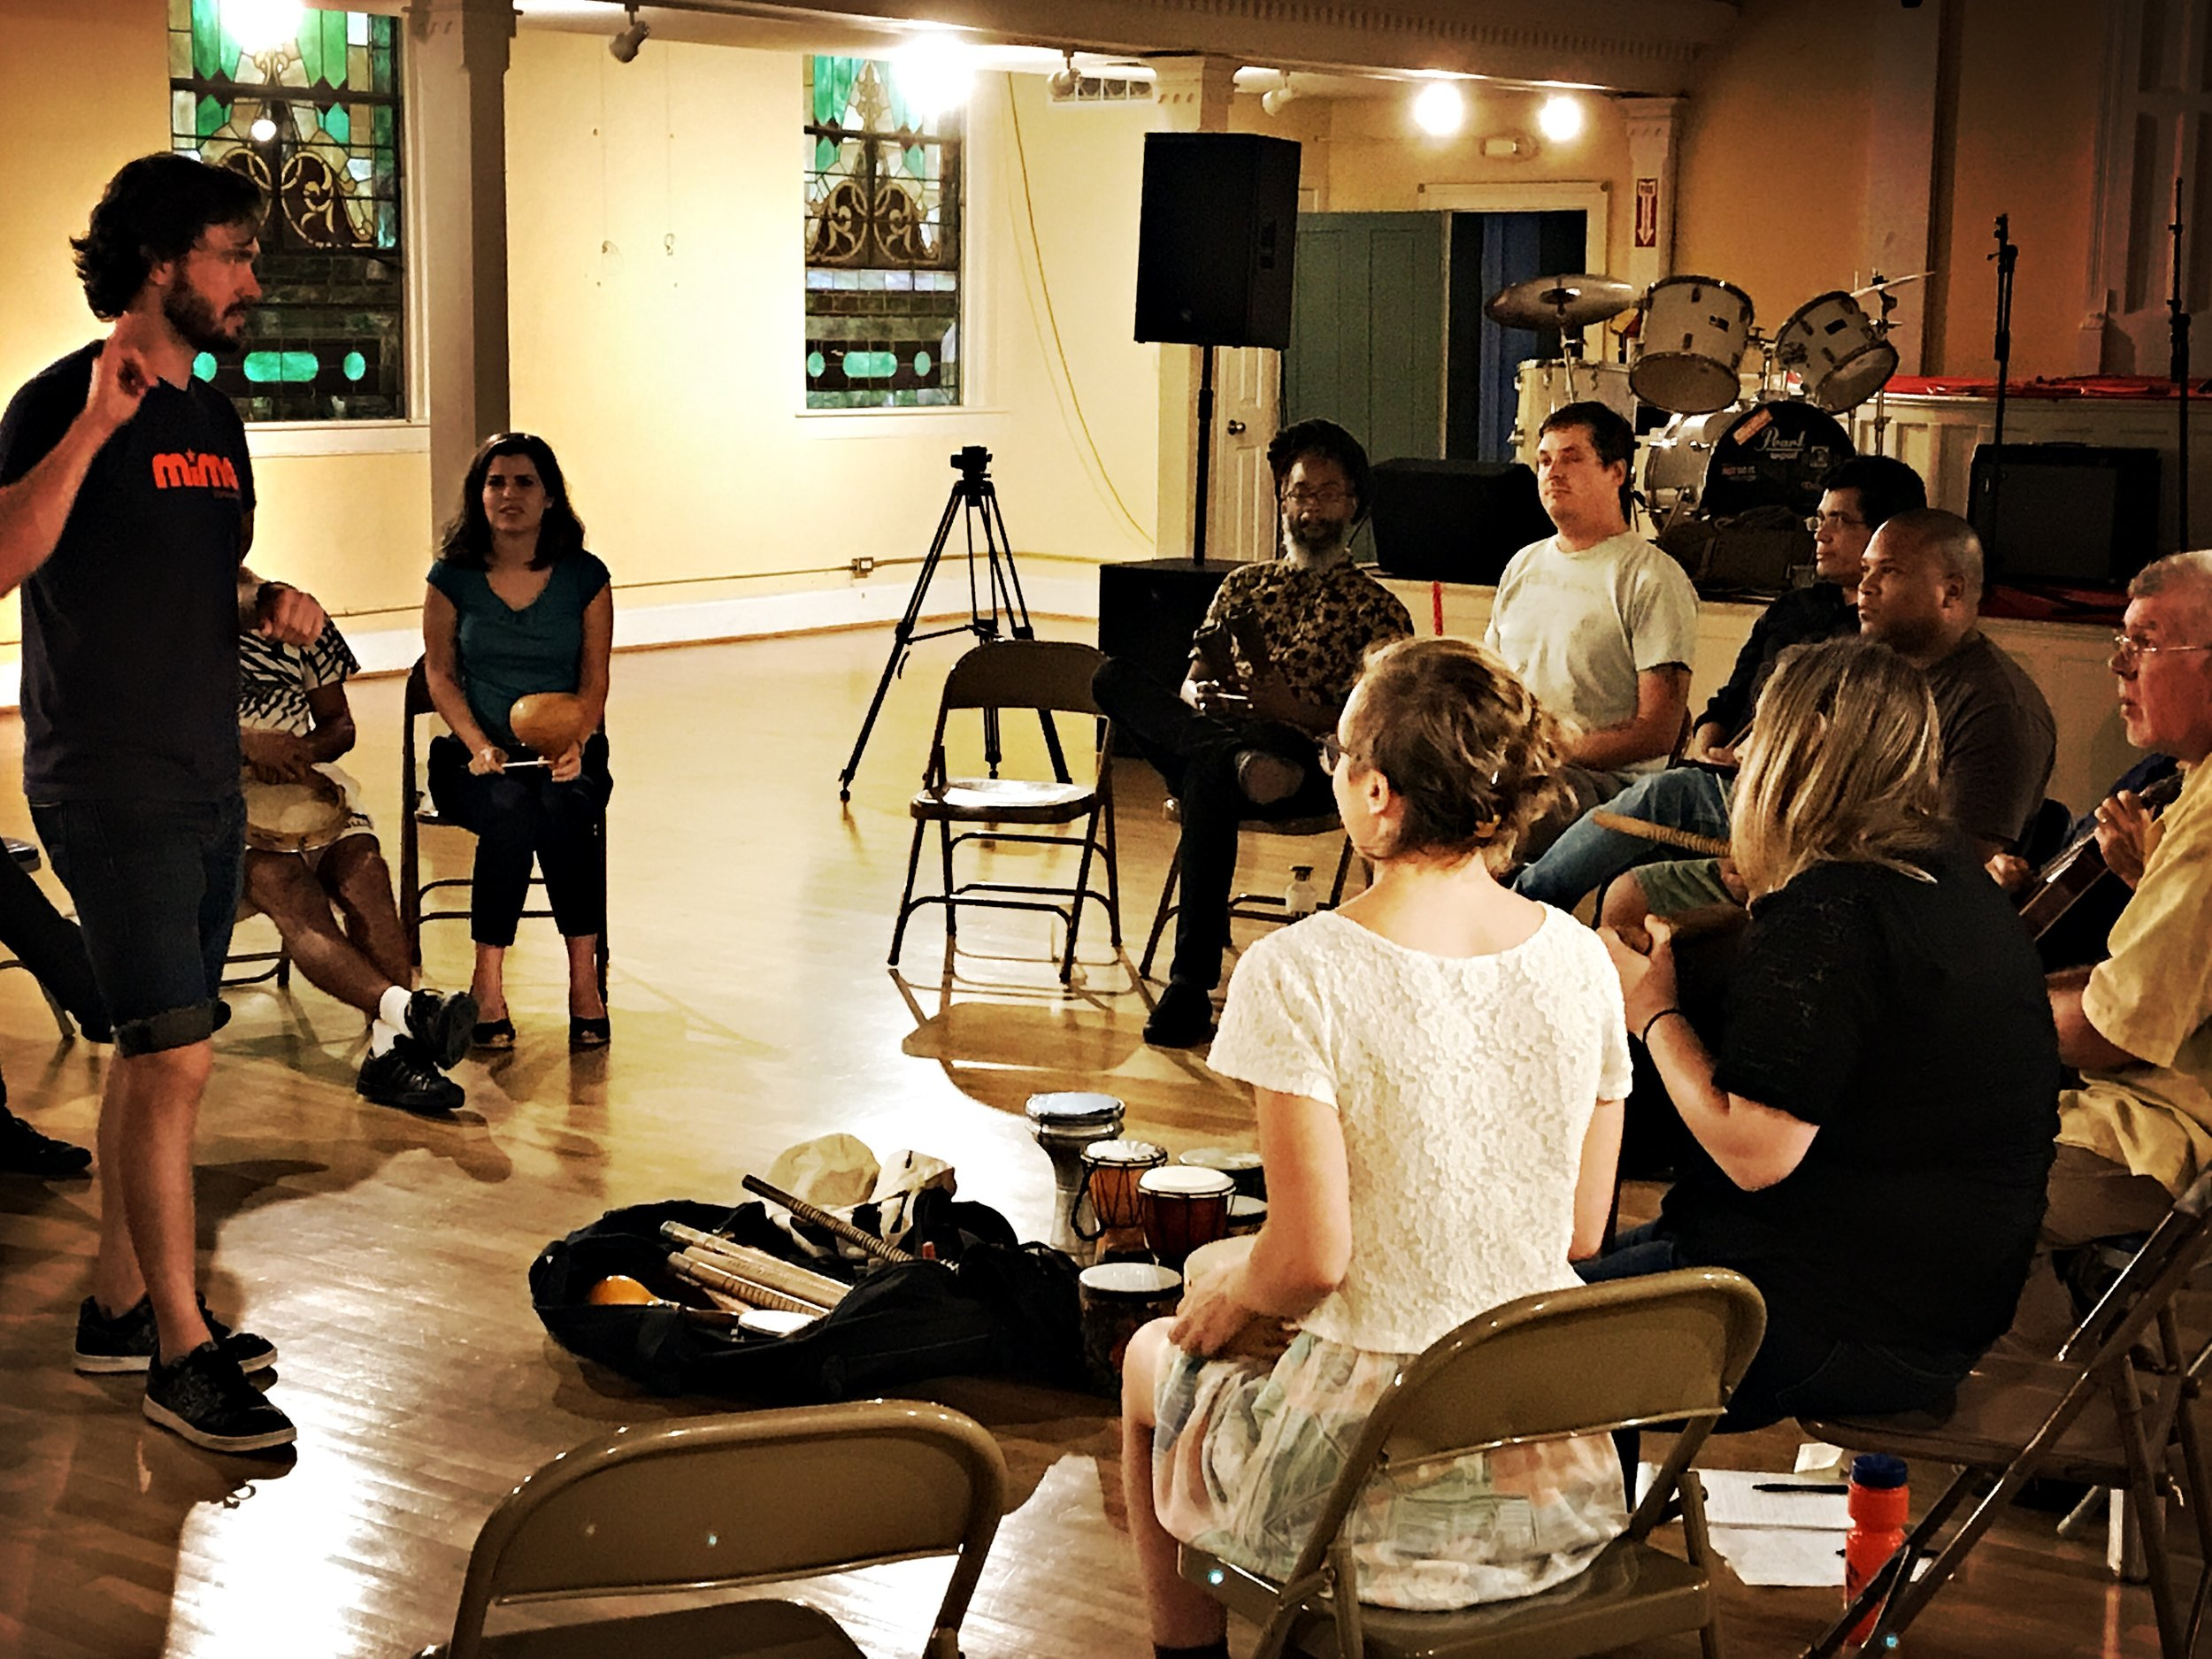 MIMA Music 2019 Teacher TrainingJan 26-27 @ Music Resource Center - Participants of the upcoming workshop will experience the MIMA Method and learn the basic principles of delivering the Method in MIMA classrooms. As such, the workshop is primarily intended for those interested in working as paid MIMA Teaching Artists. It may also be of interest to educators in the arts looking to expand their pedagogical repertoire and musicians interested in learning new approaches to collaborative songwriting. For everyone, we promise an engaging musical experience and the opportunity to meet like-minded creative folks.